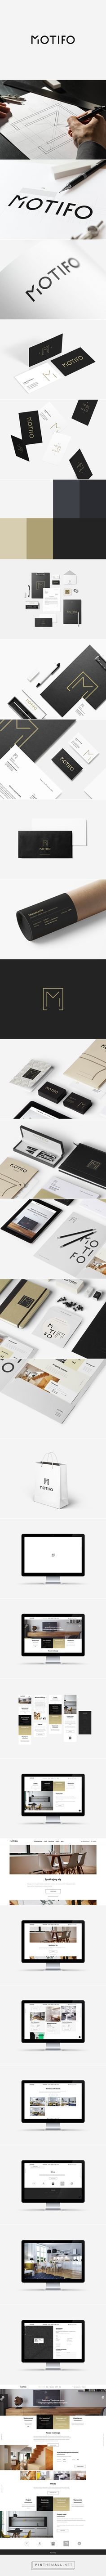 MOTIFO - Interior Design Architect Branding & Website on Behance. - a grouped images picture - Pin Them All Web Design, Design Typo, Brand Identity Design, Graphic Design Branding, Logo Branding, Creative Design, Branding Website, Brand Design, Logo Inspiration